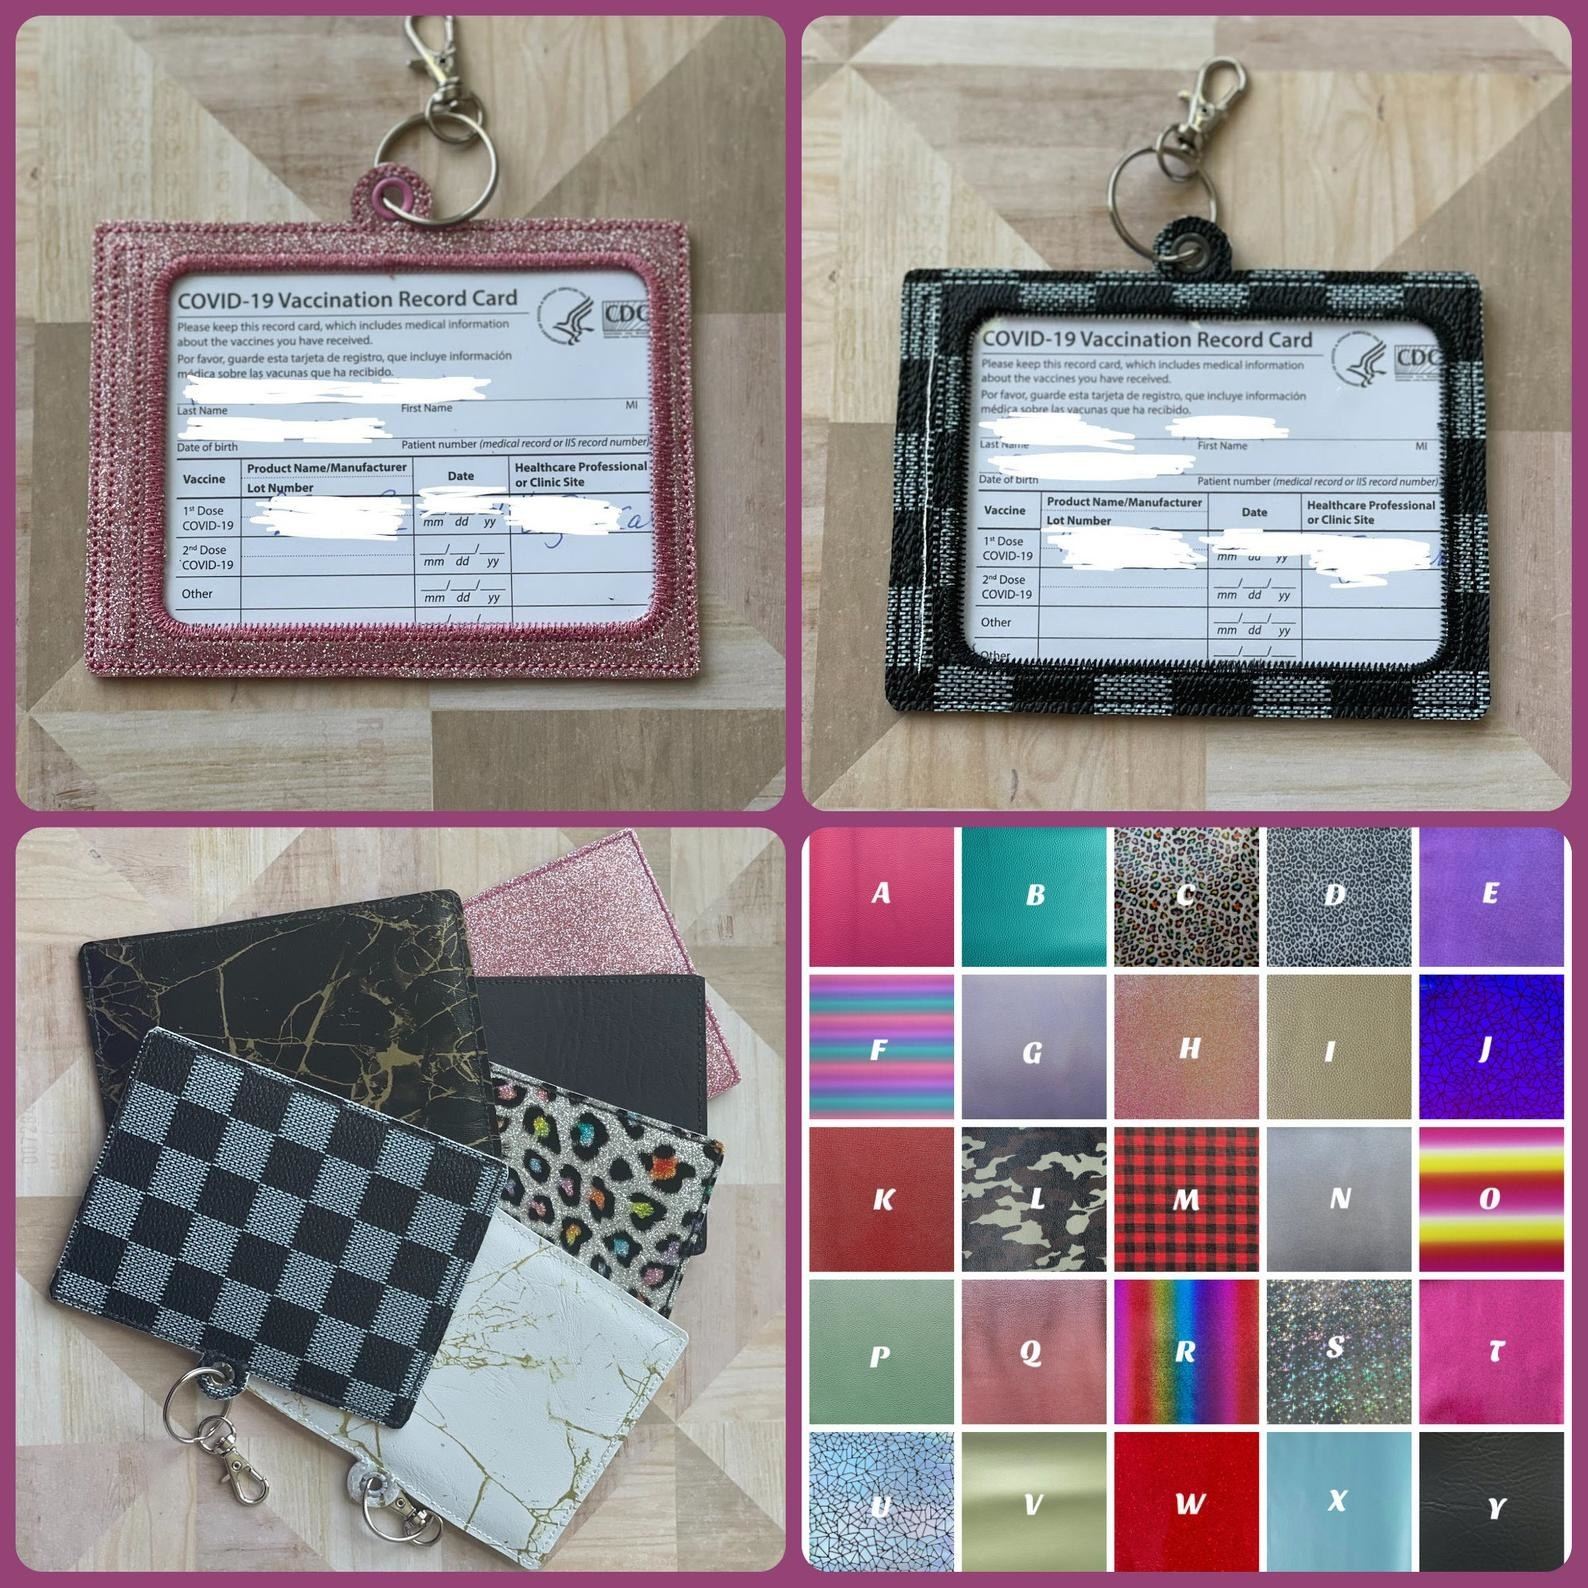 Vaccine card holders in a variety of colors and prints with a small hole for a keychain loop